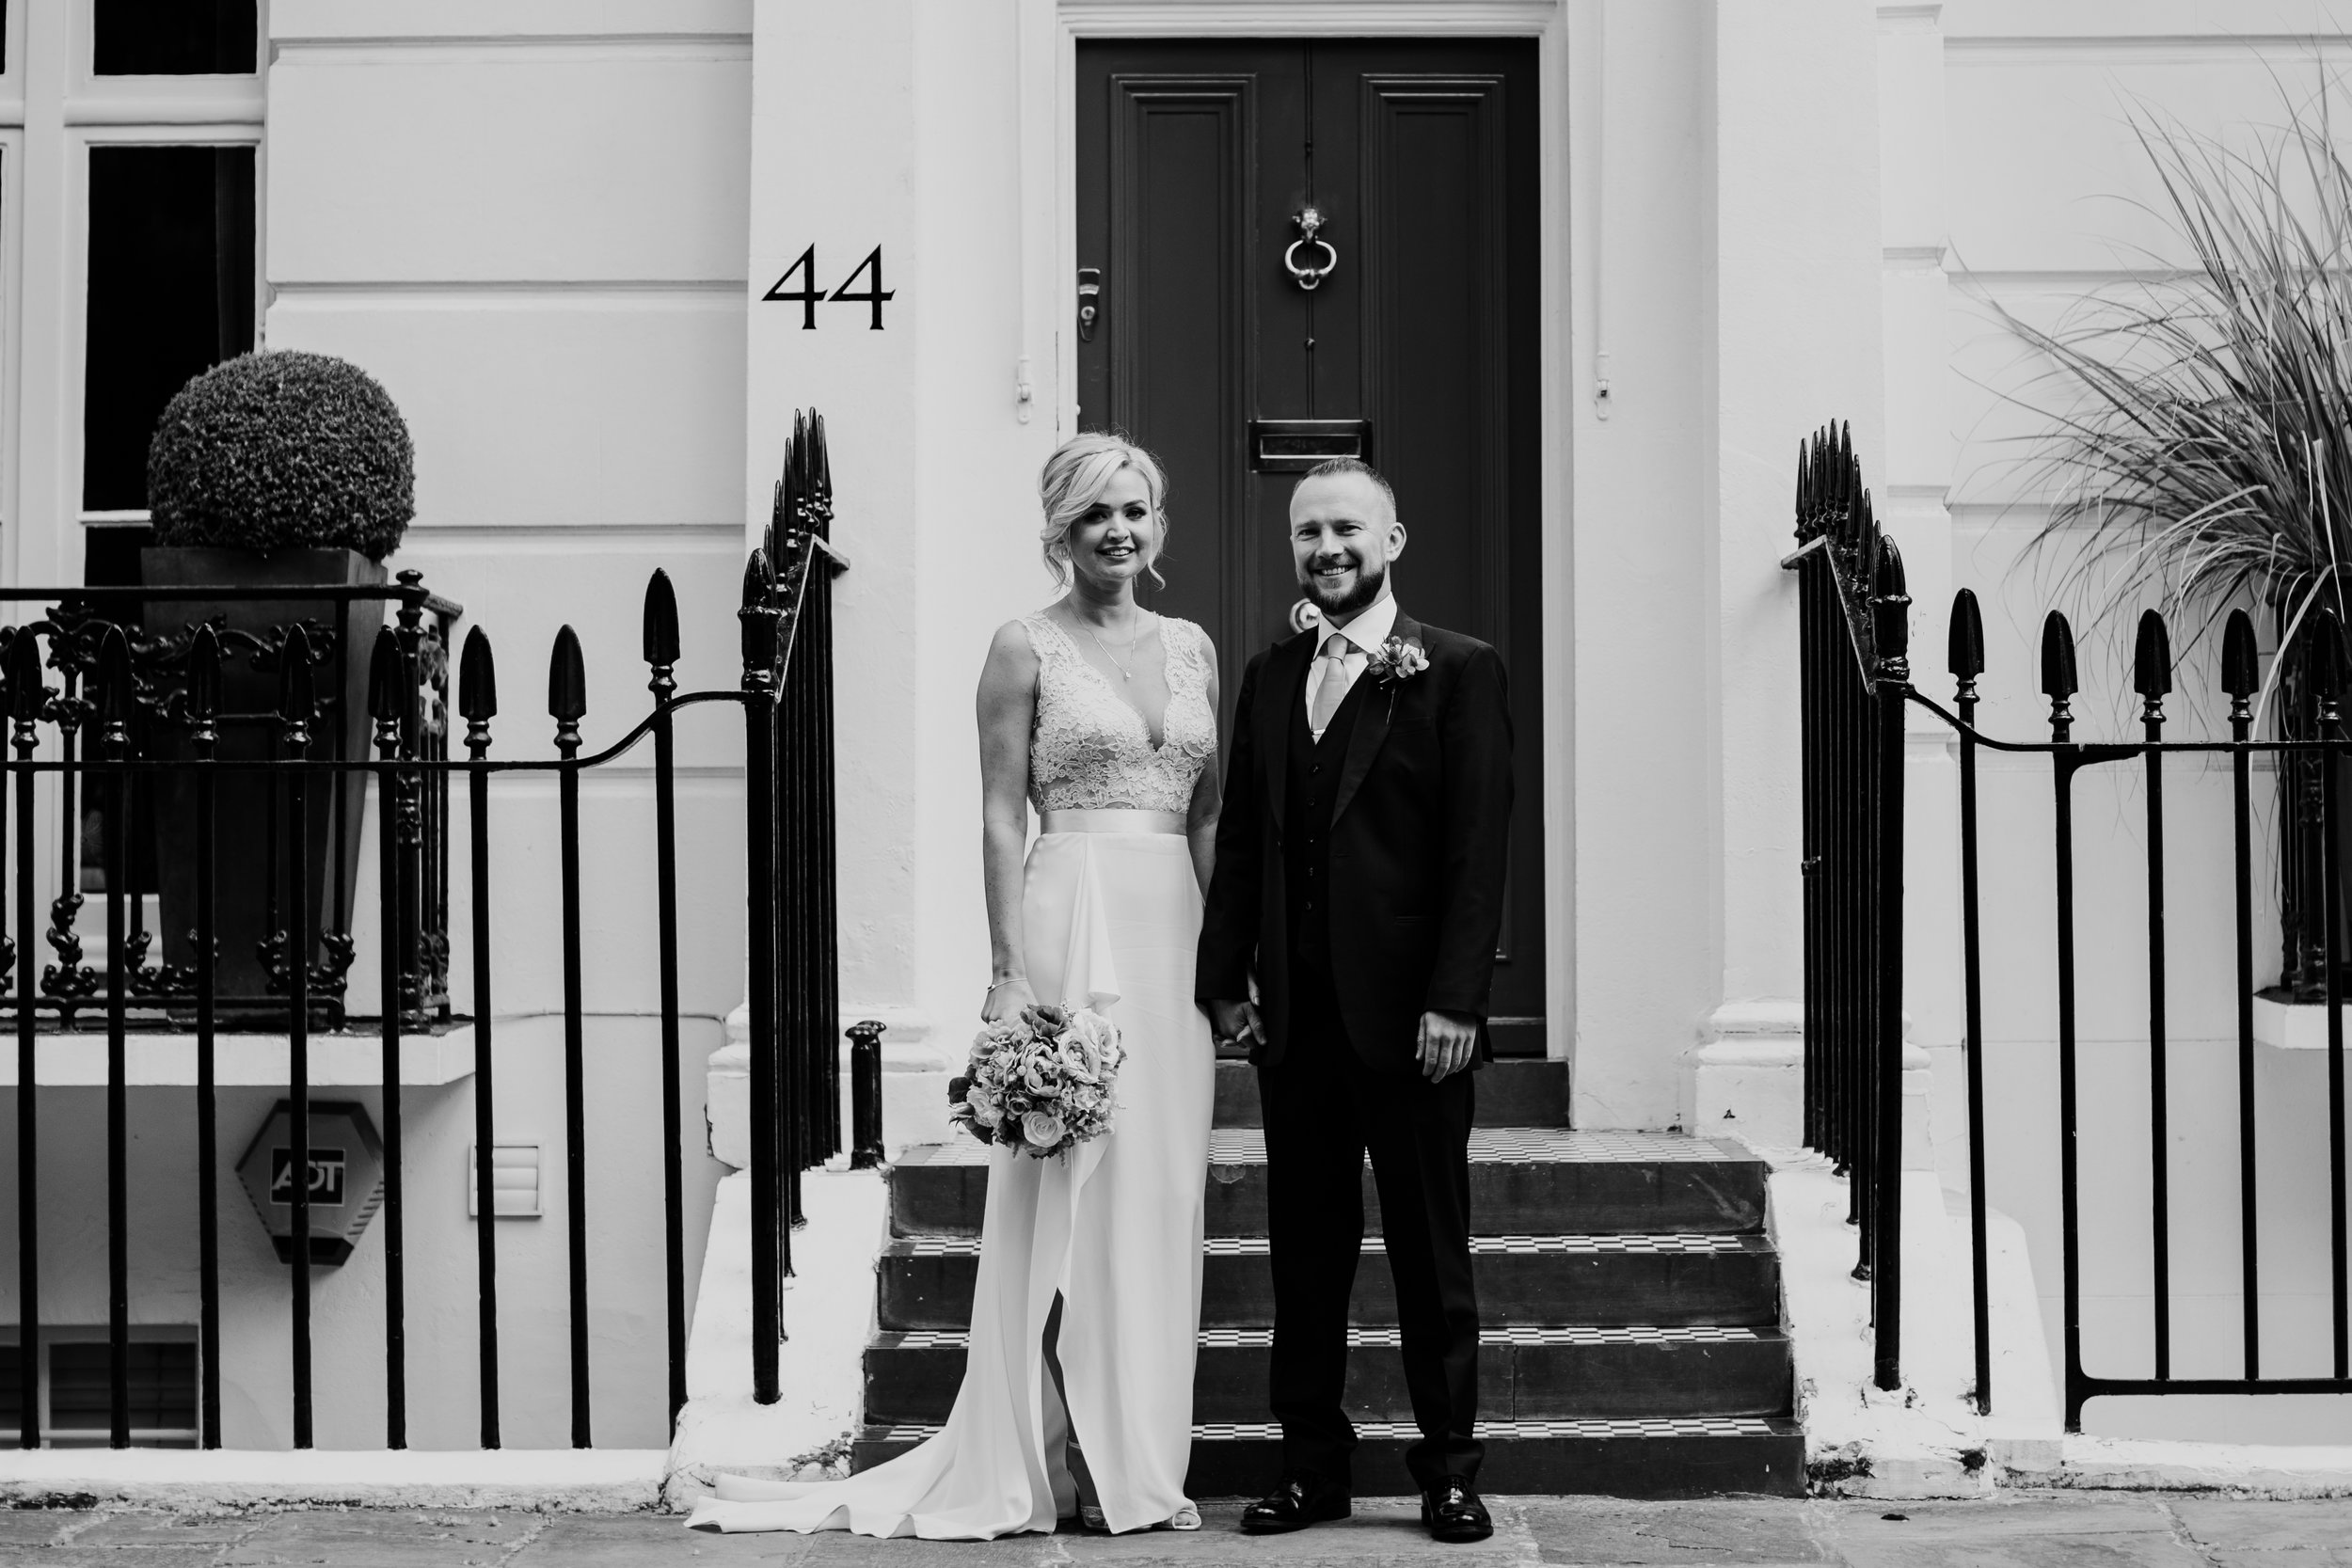 Elopements - £650Up to 5 Hour CoverageUp to 15 guestsAn online gallery with full print privileges20 6x4 Printed images